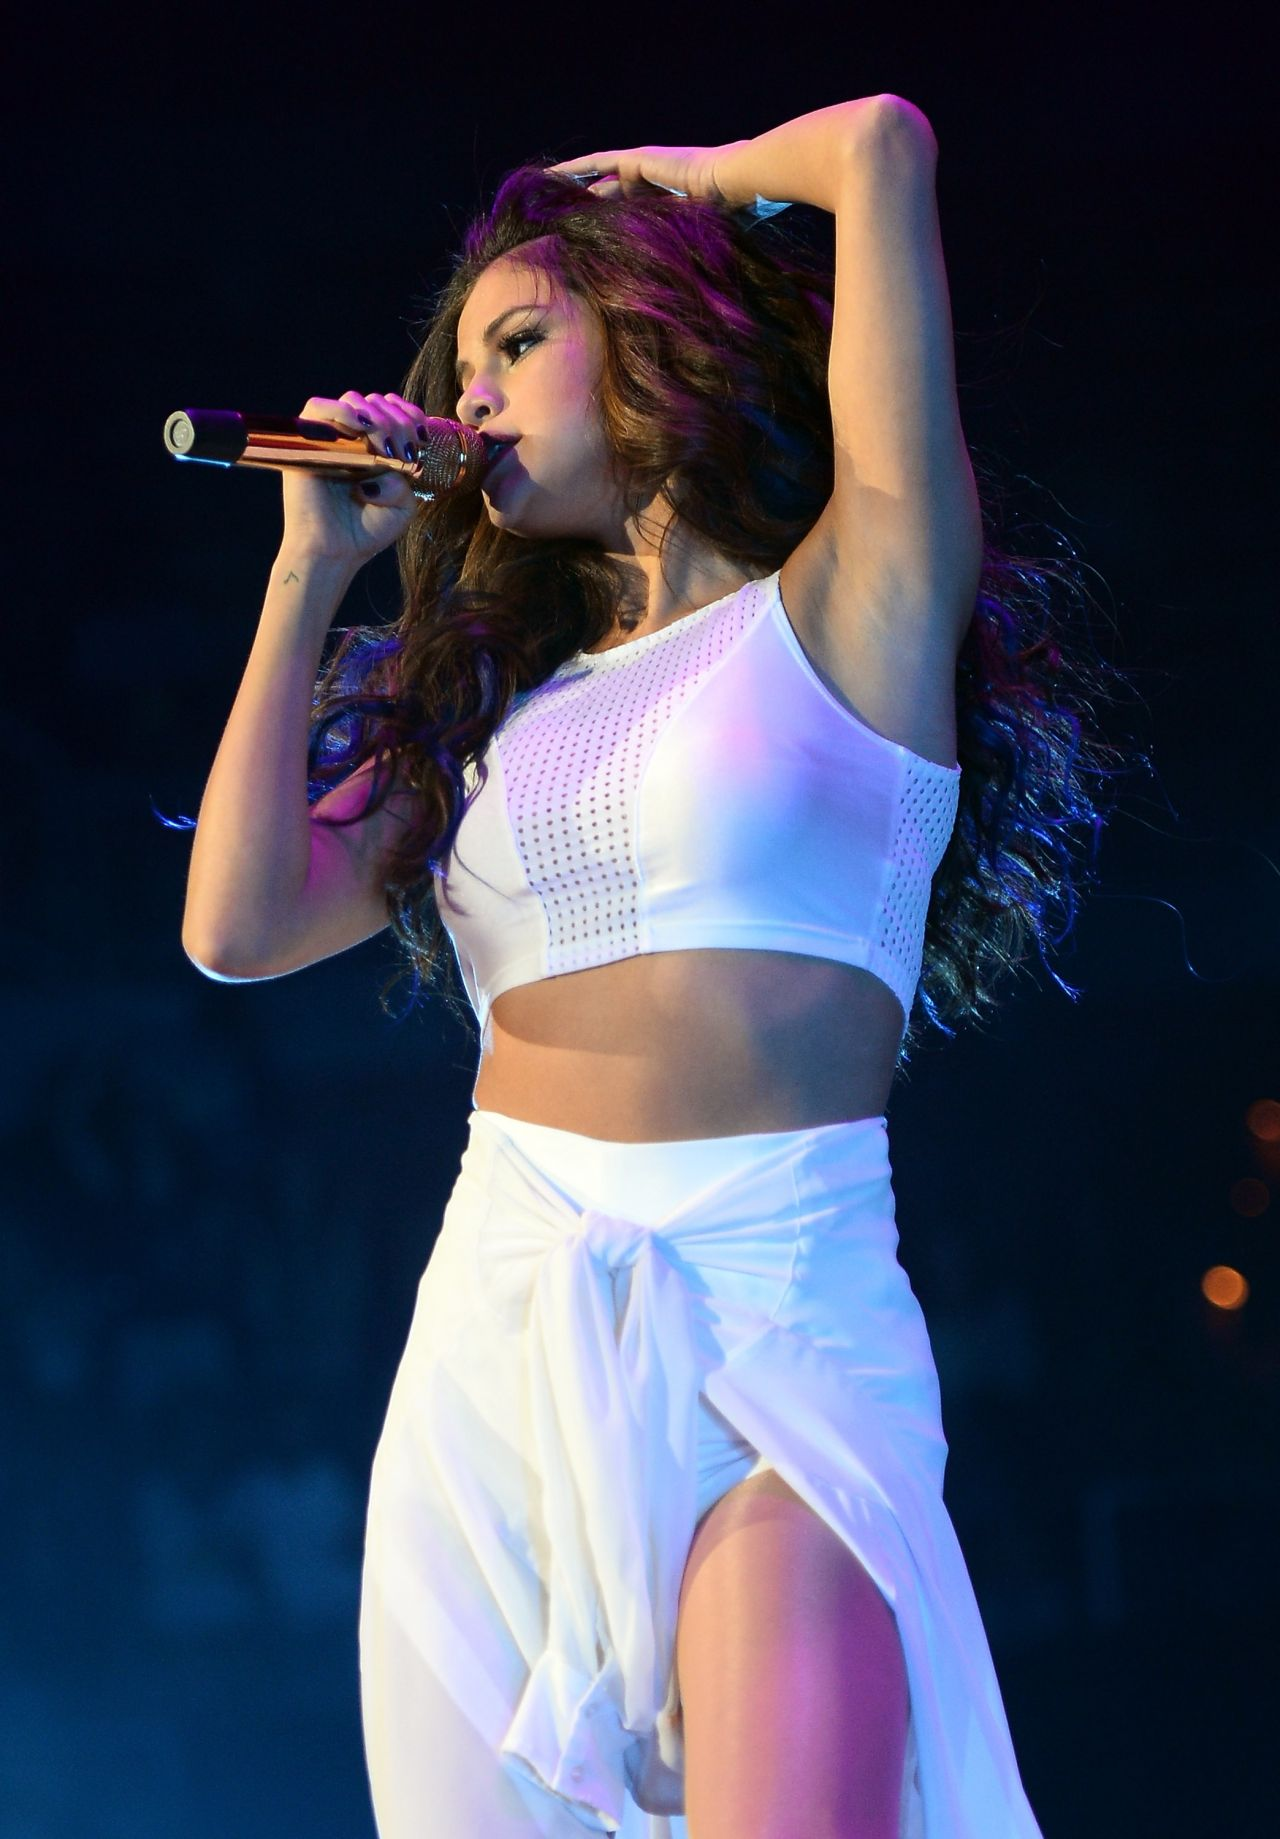 selena gomez performing at her stars dance concert tour in